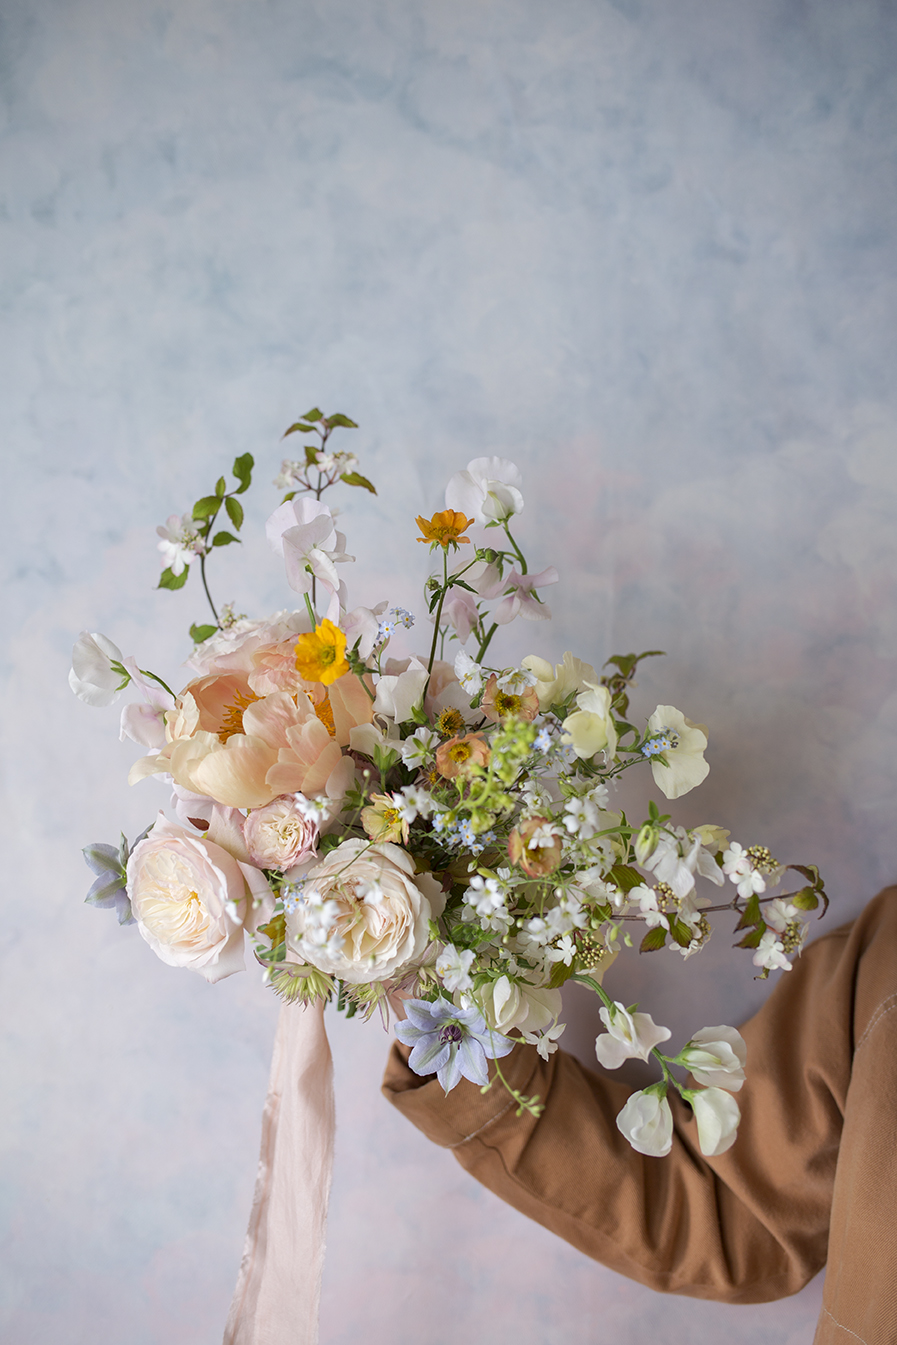 Spring wedding bouquet with coral charm peony and geum flowers by Aesme Flower Studio